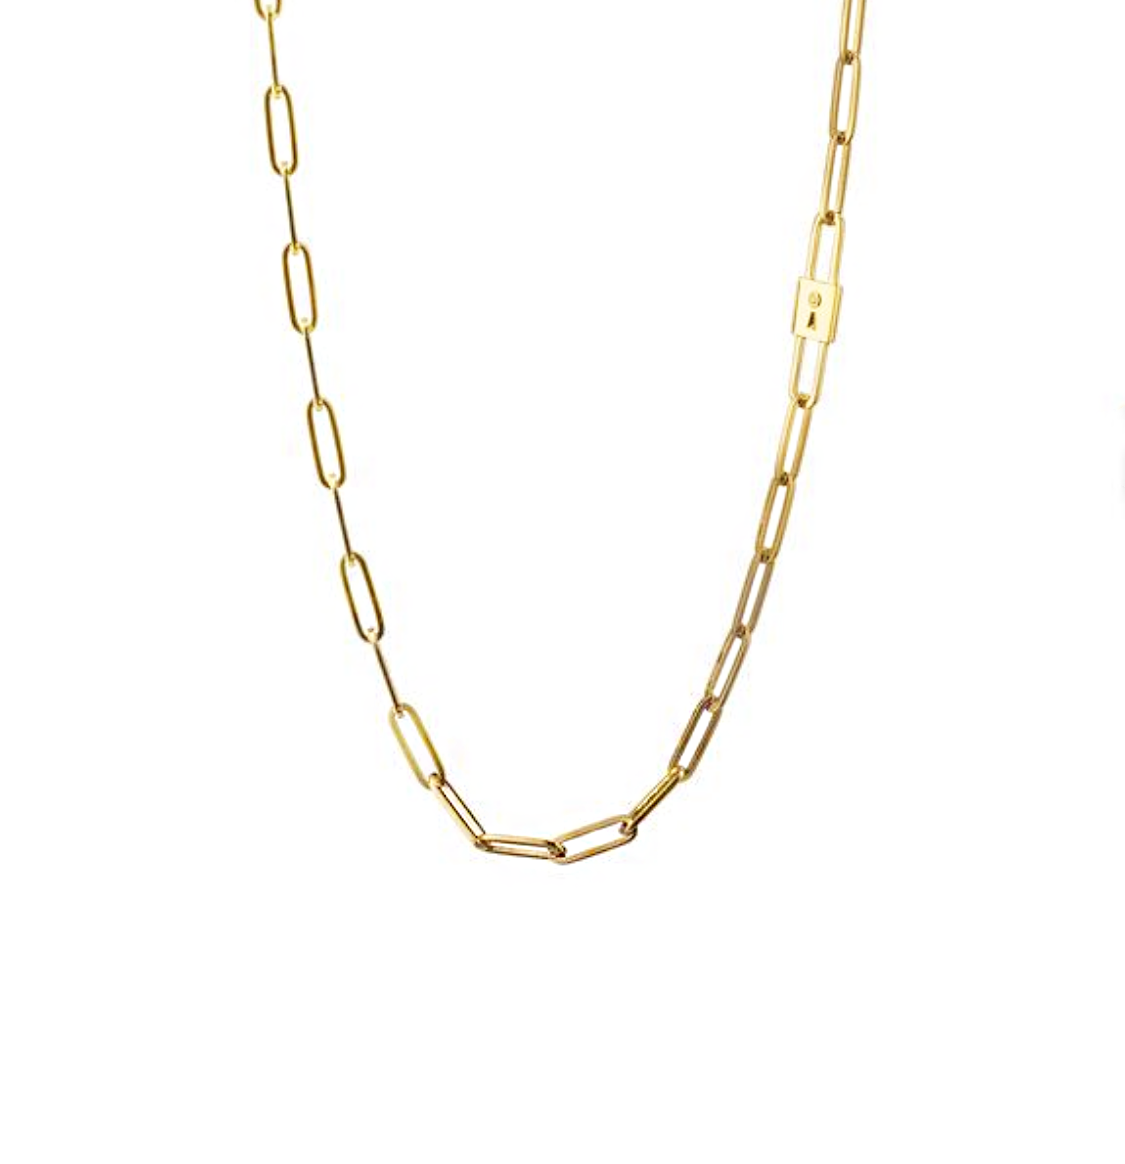 Paperclip Chain with Diamond Accent Charm - Lesley Ann Jewels